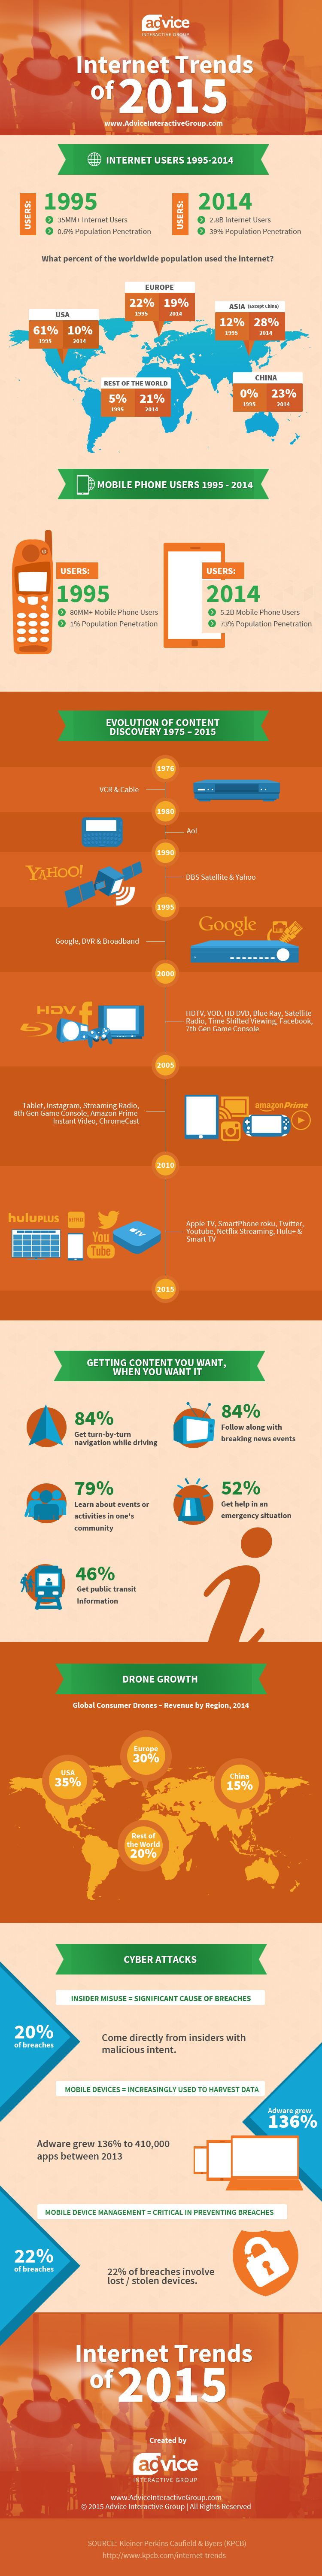 Digital marketing trends 2015 infographic